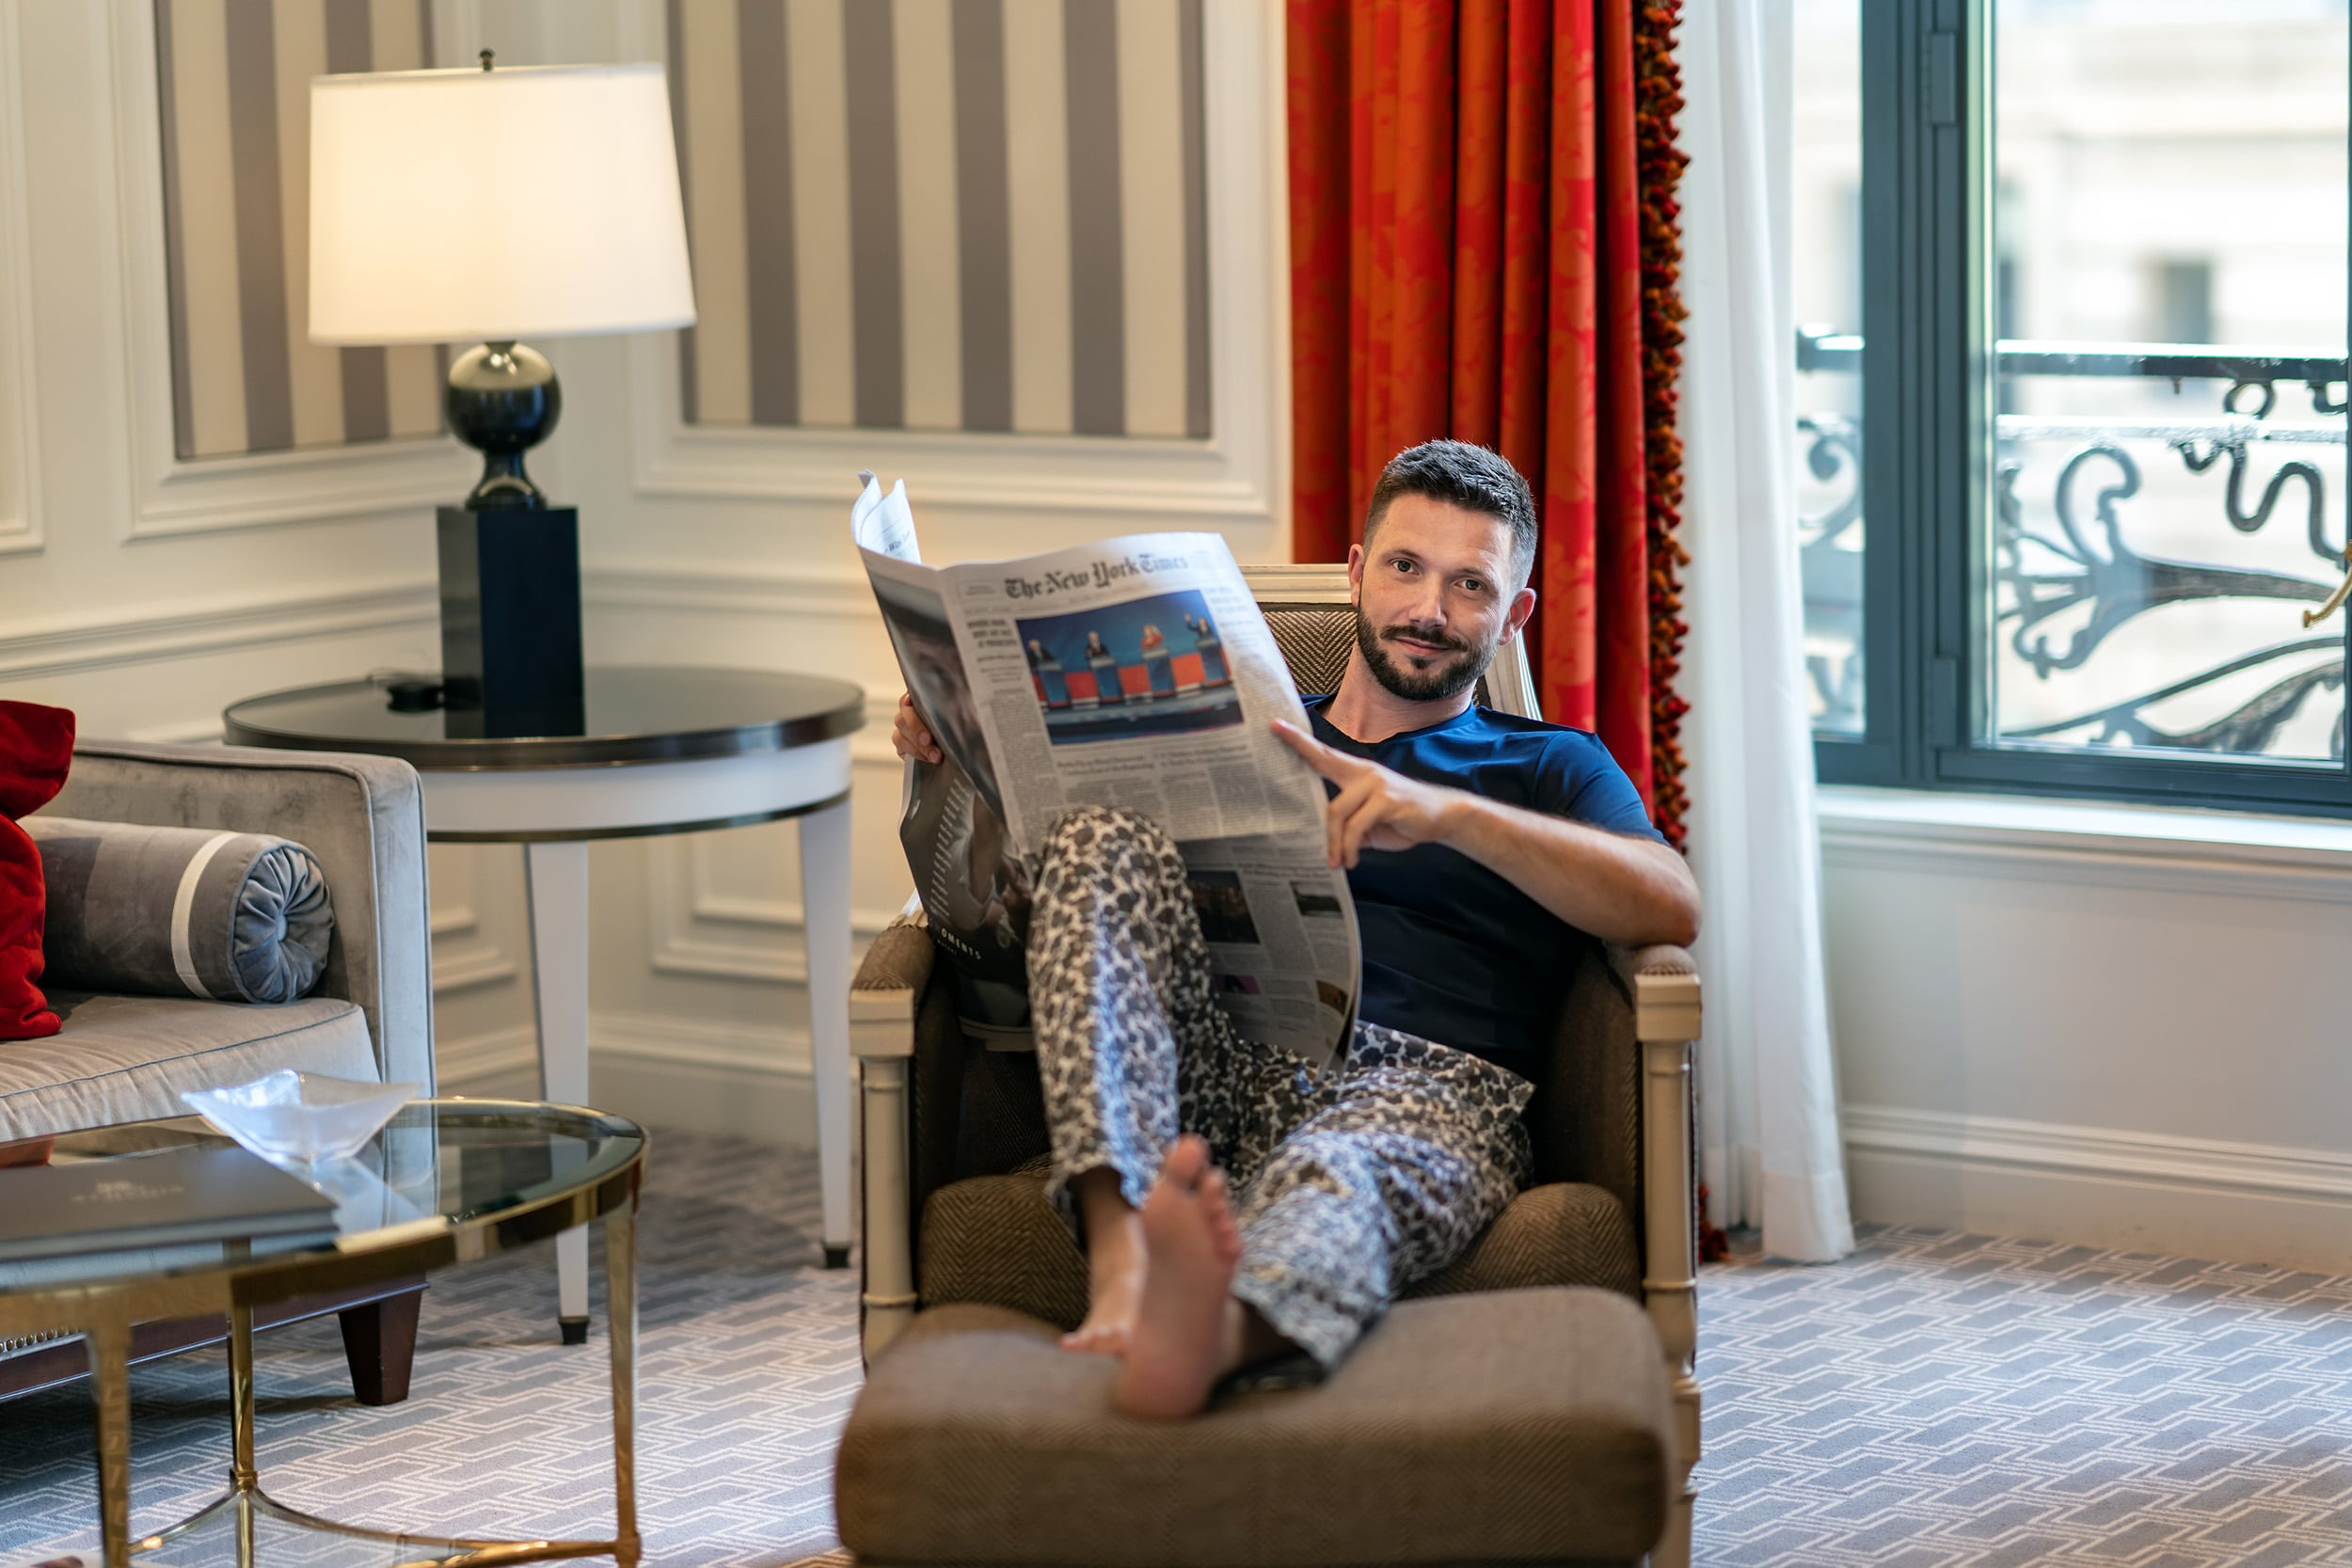 Man reading newspaper in the Grand Suite at The St Regis New York